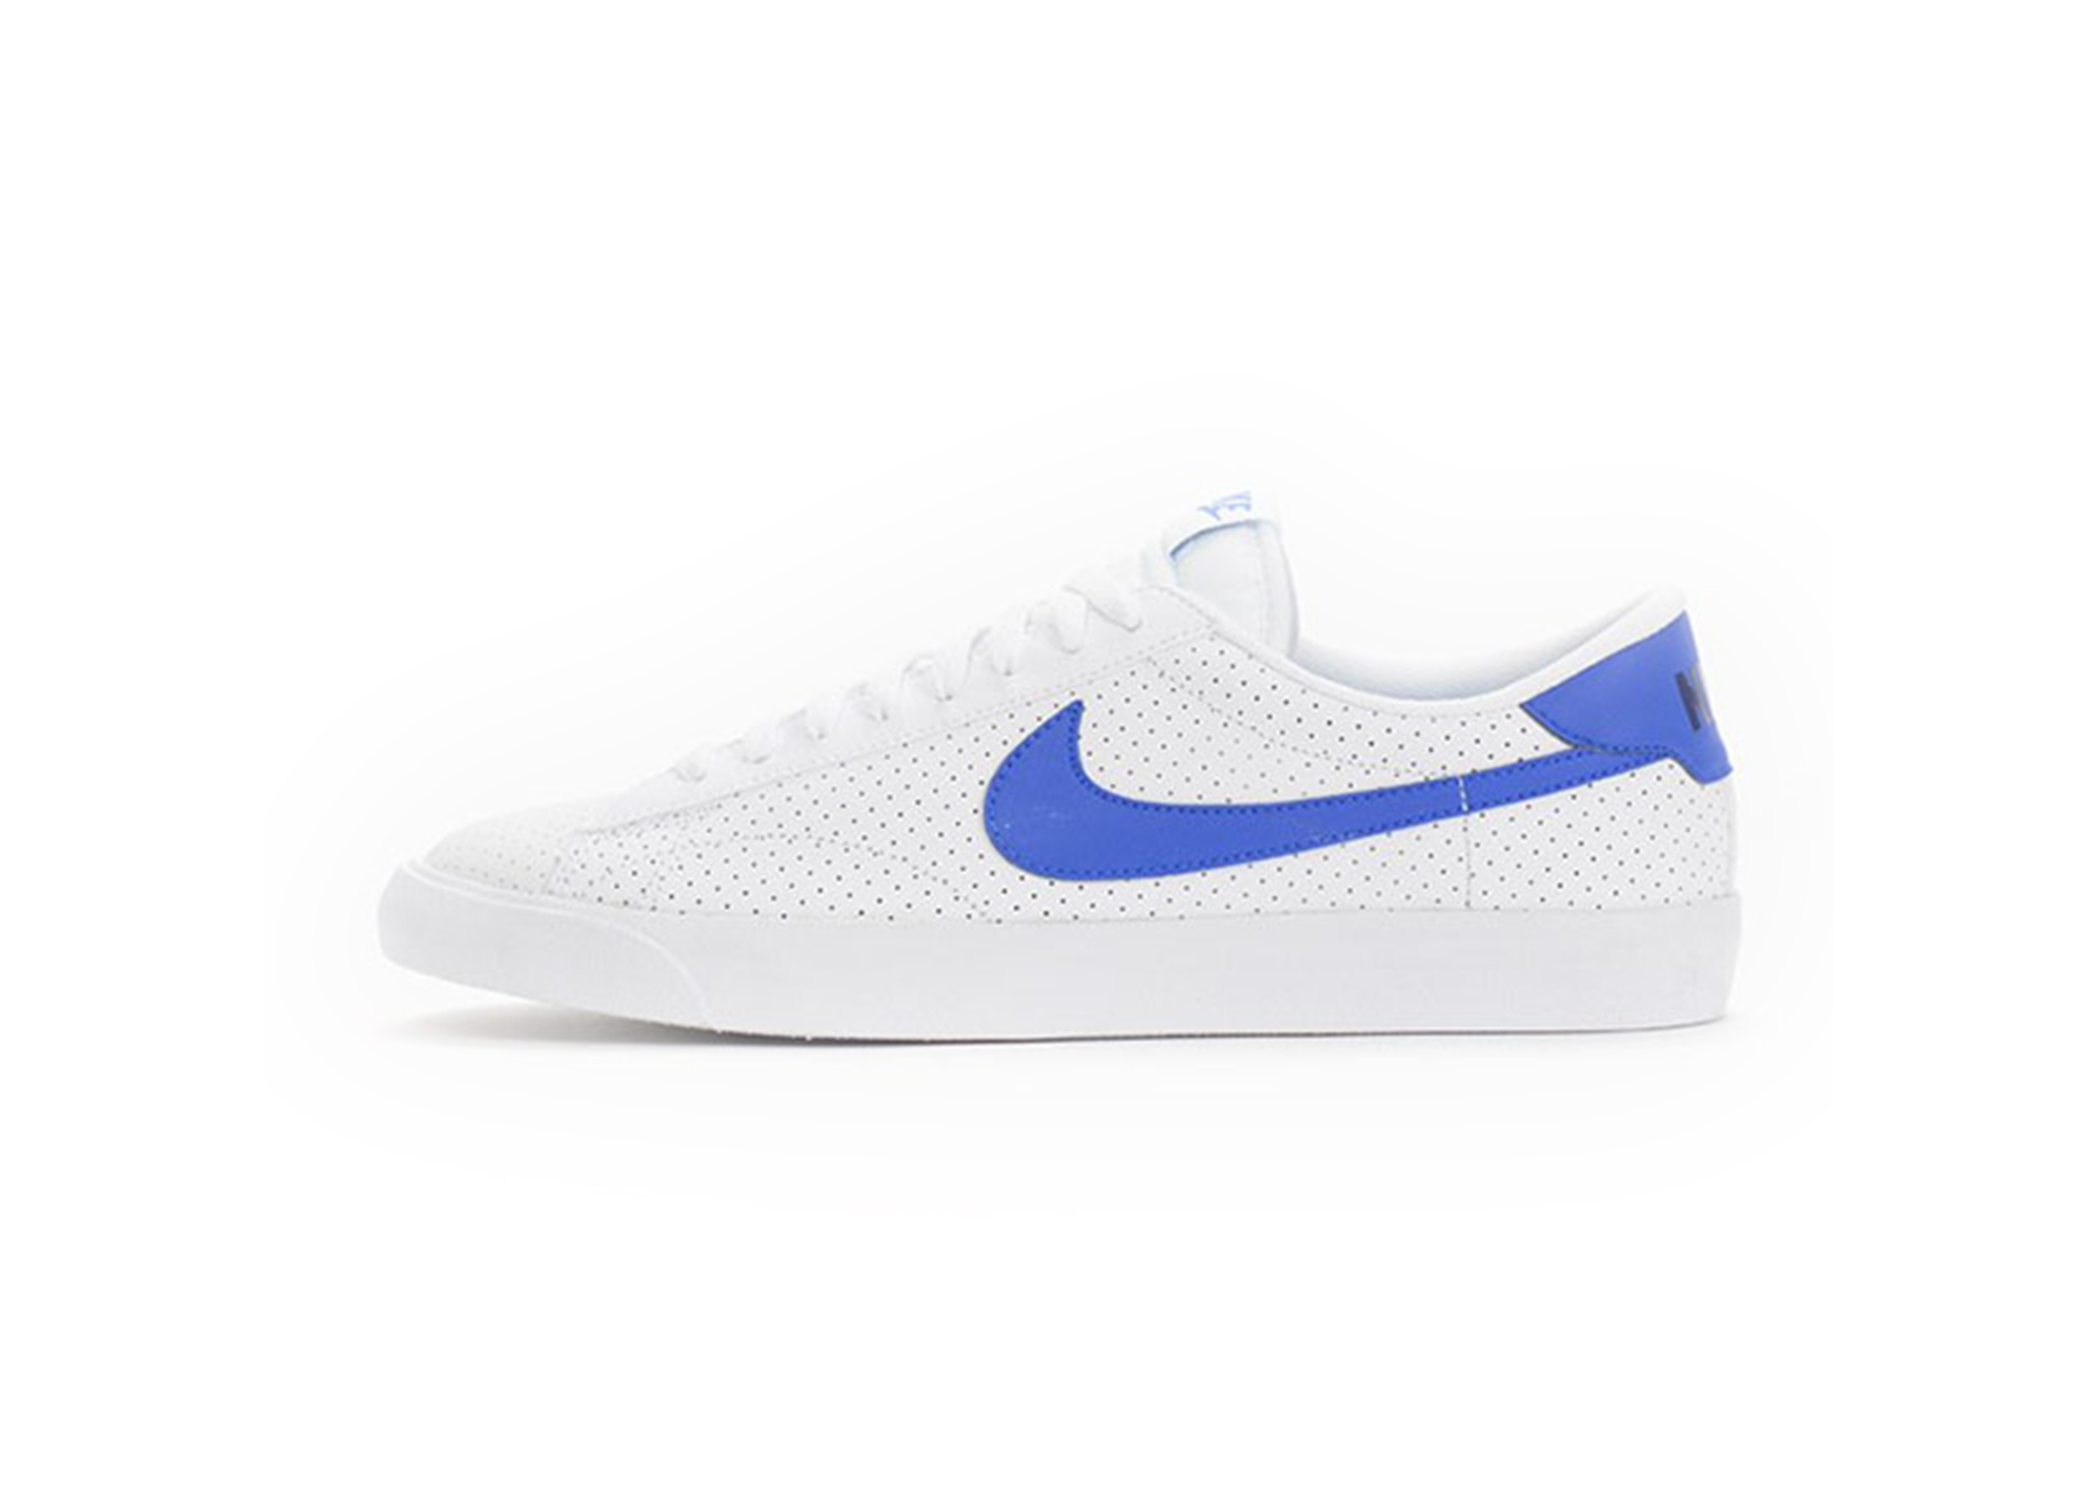 gethelookcaprio_0000s_0001_nike-tennis-classic-ac-white-racer-blue-perf-2